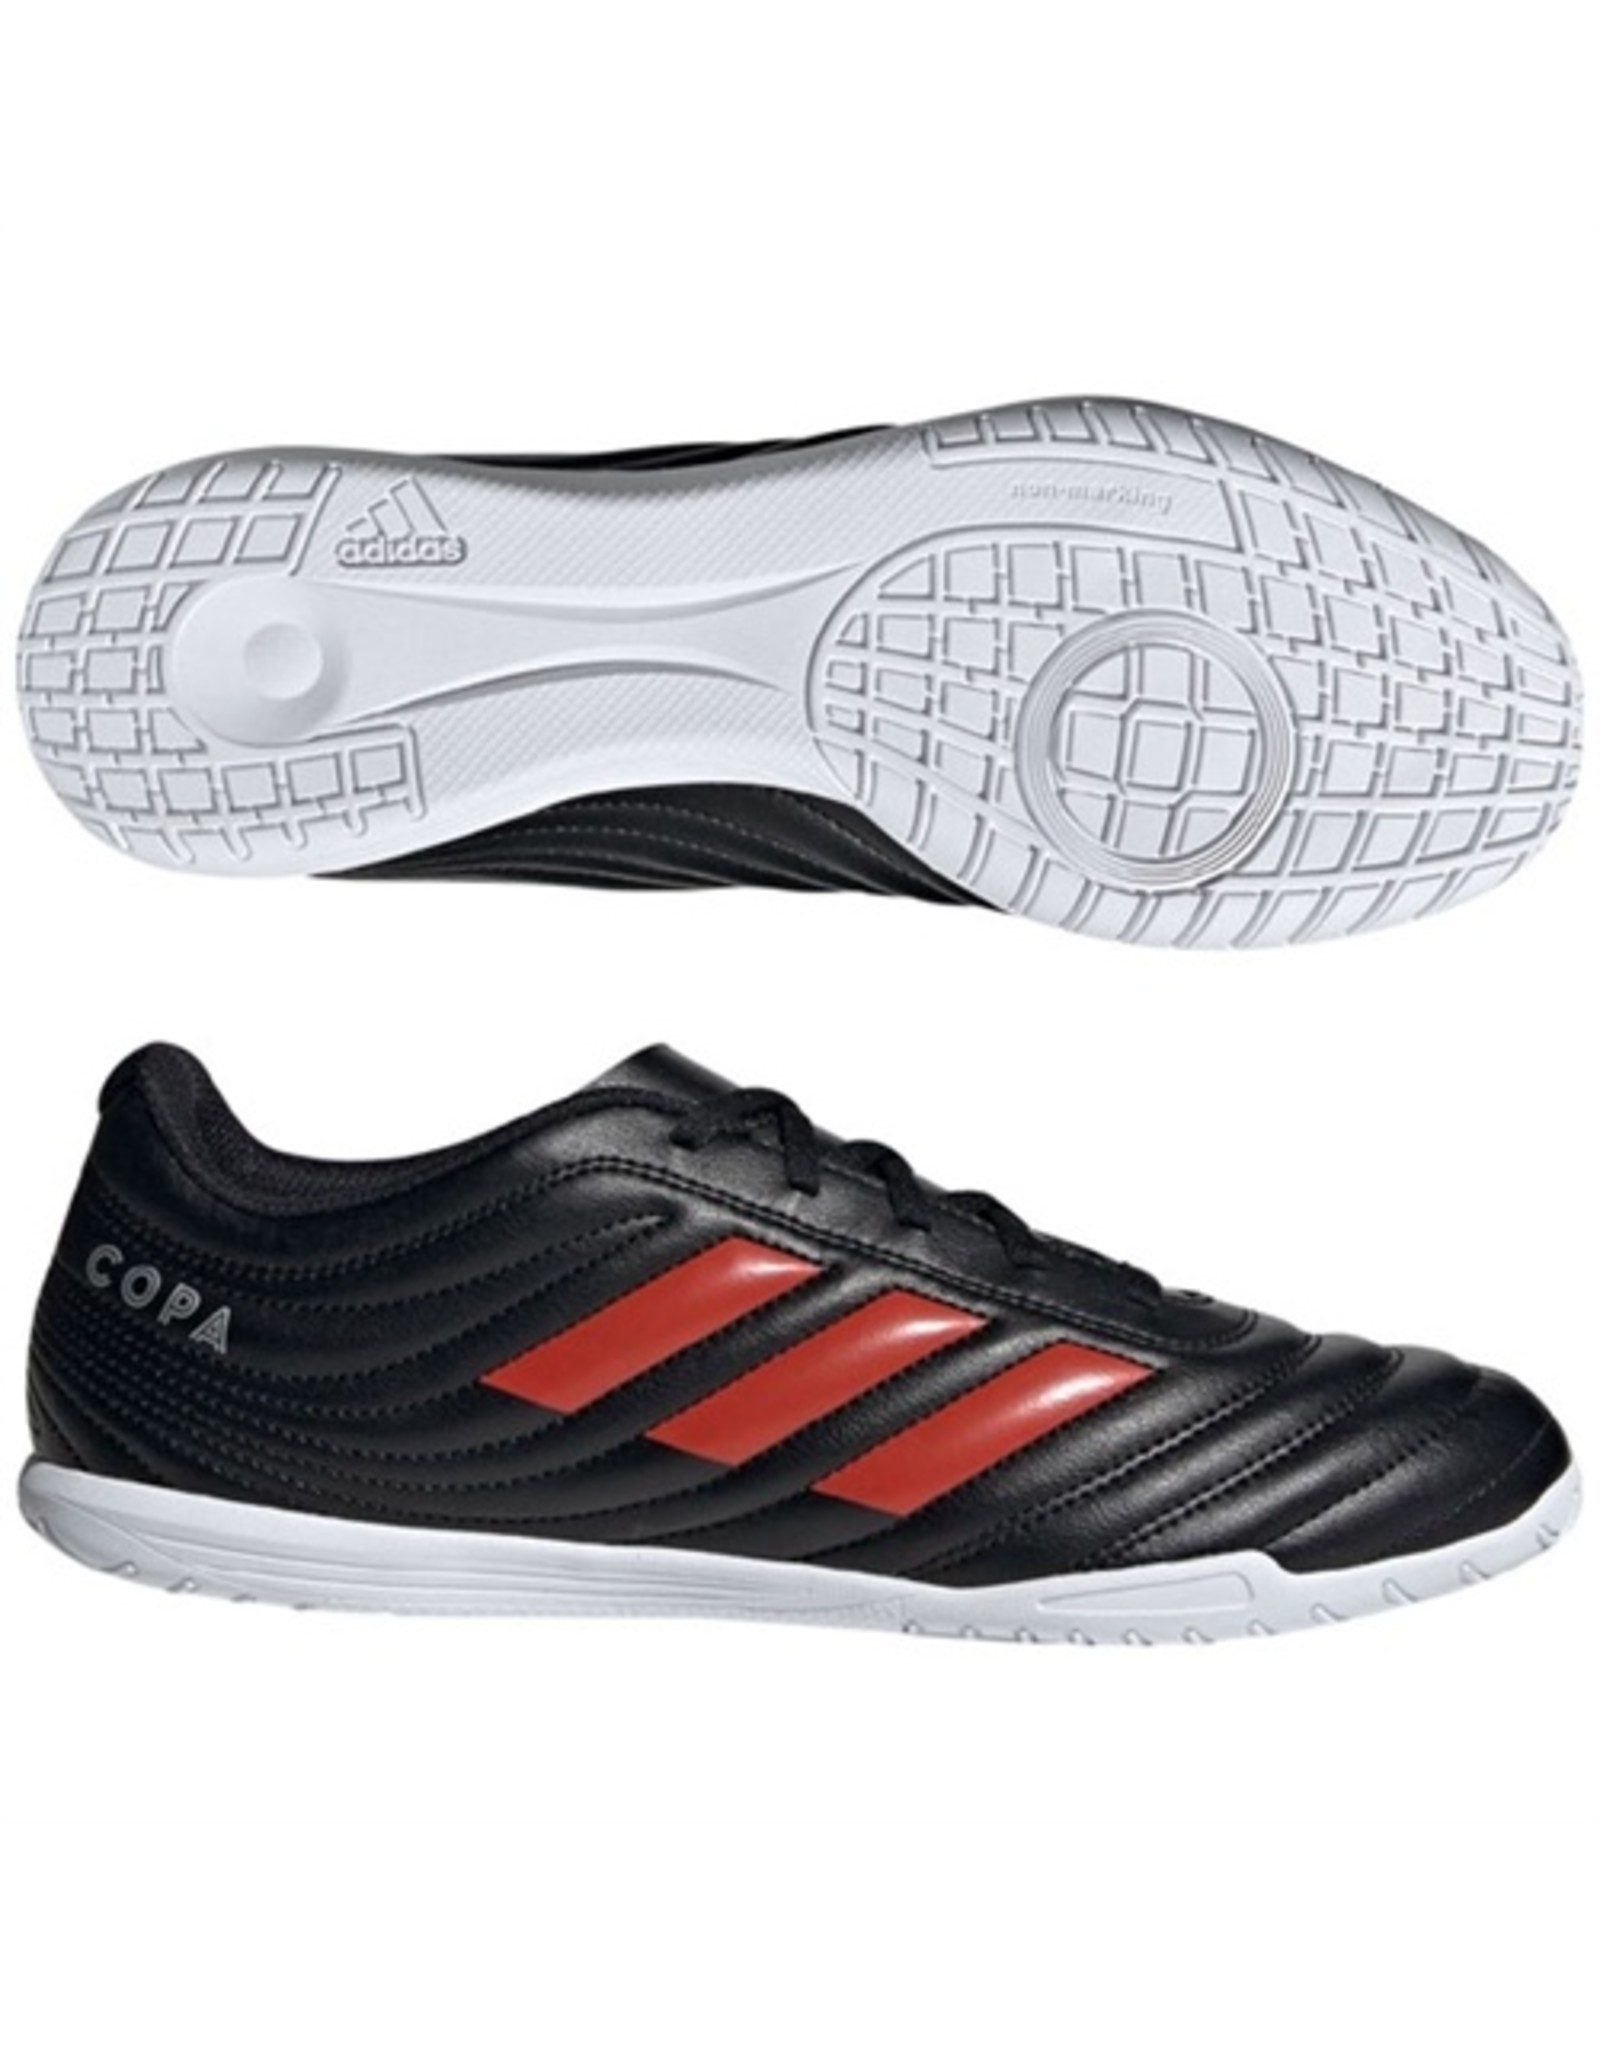 SOULIER SOCCER INT ADDIDAS JR